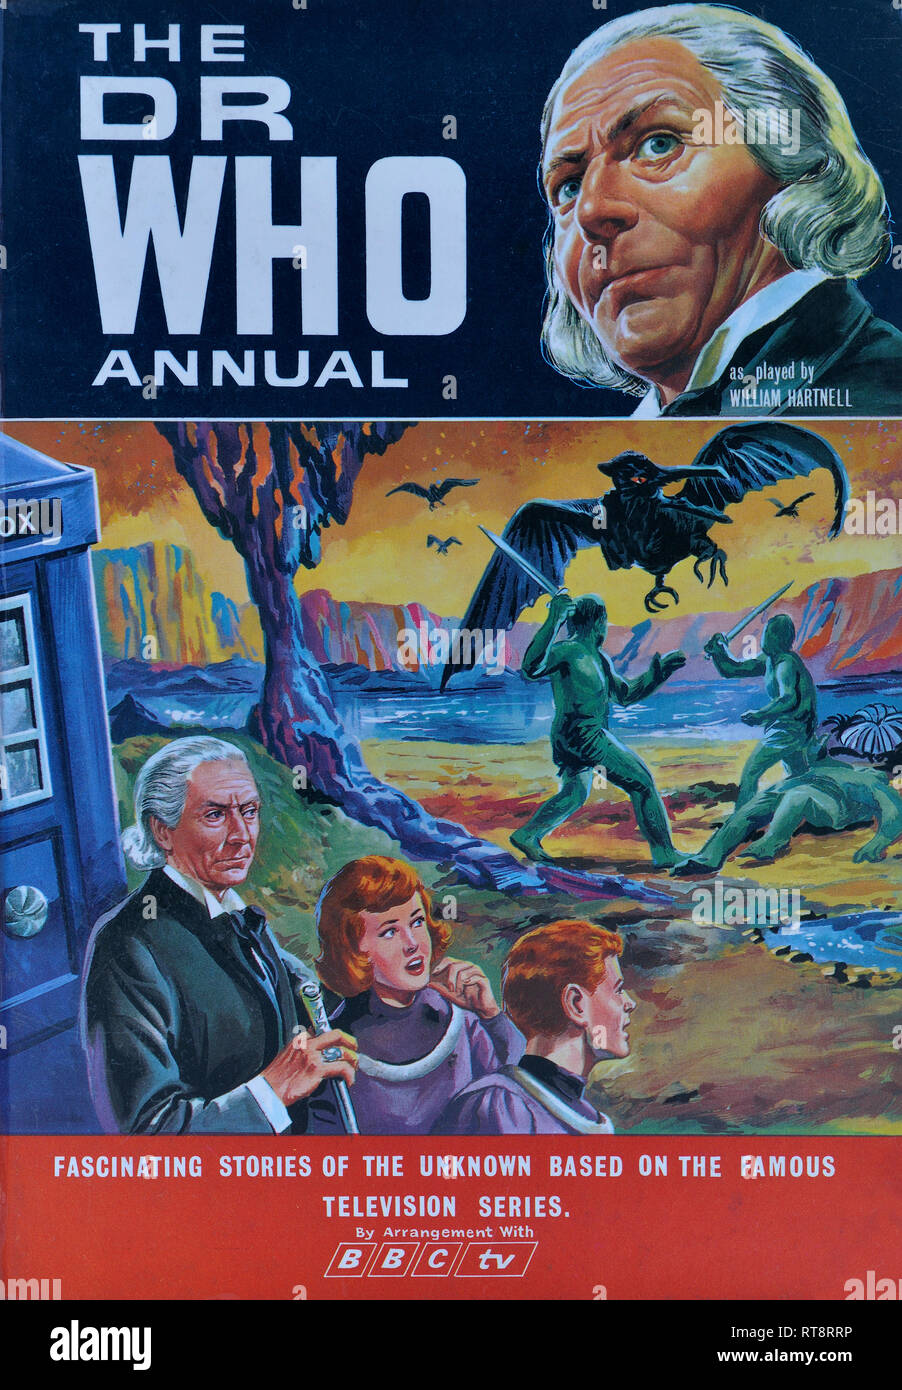 The Dr Who Annual. Circa 1966 - Stock Image